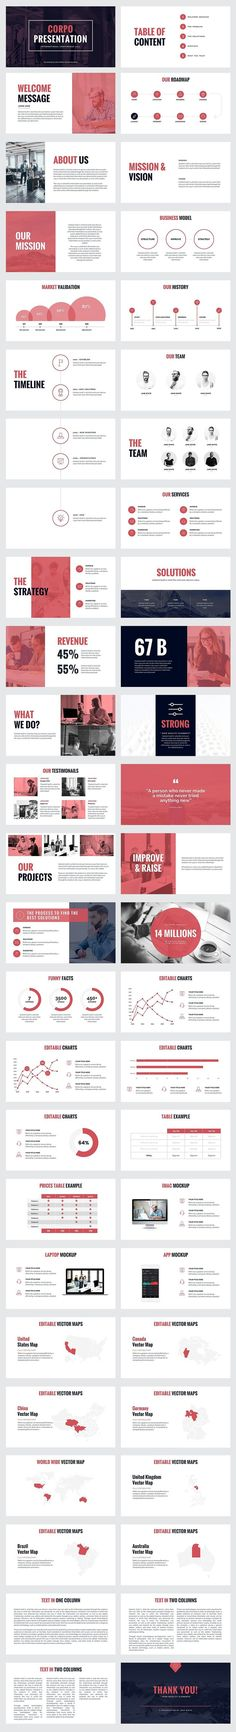 Corpo business powerpoint template is an innovative and modern looking design which will give you the professional edge during your project's presentation Powerpoint Design Templates, Ppt Design, Creative Powerpoint, Slide Design, Layout Design, Modern Powerpoint Design, Project Presentation, Corporate Presentation, Presentation Layout